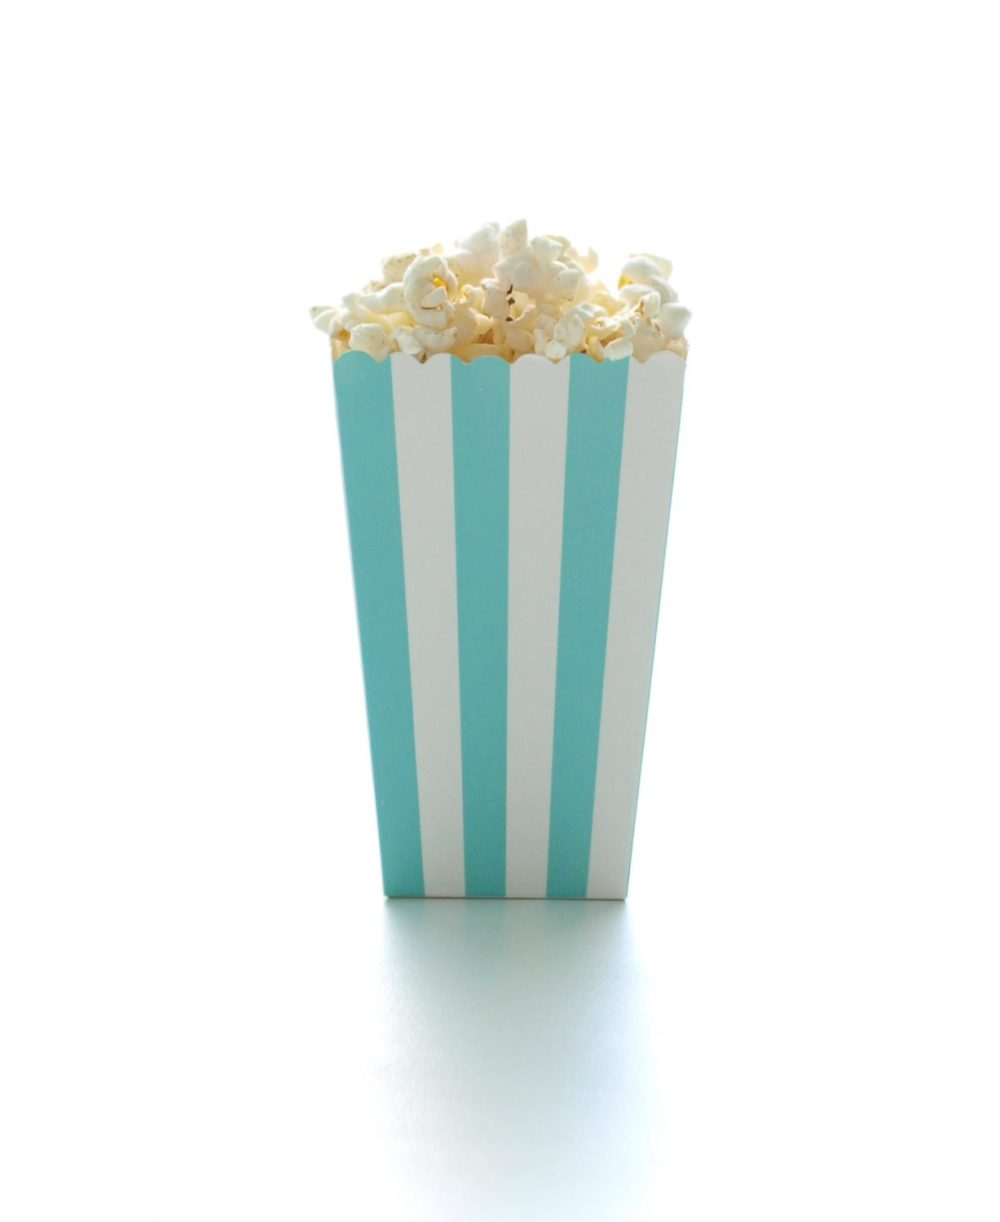 Aqua Blue Stripe Popcorn Boxes | 12 Pack - Paper Wedding Boxes, Miniature Candy Cartons, Open Top Treat Tubs